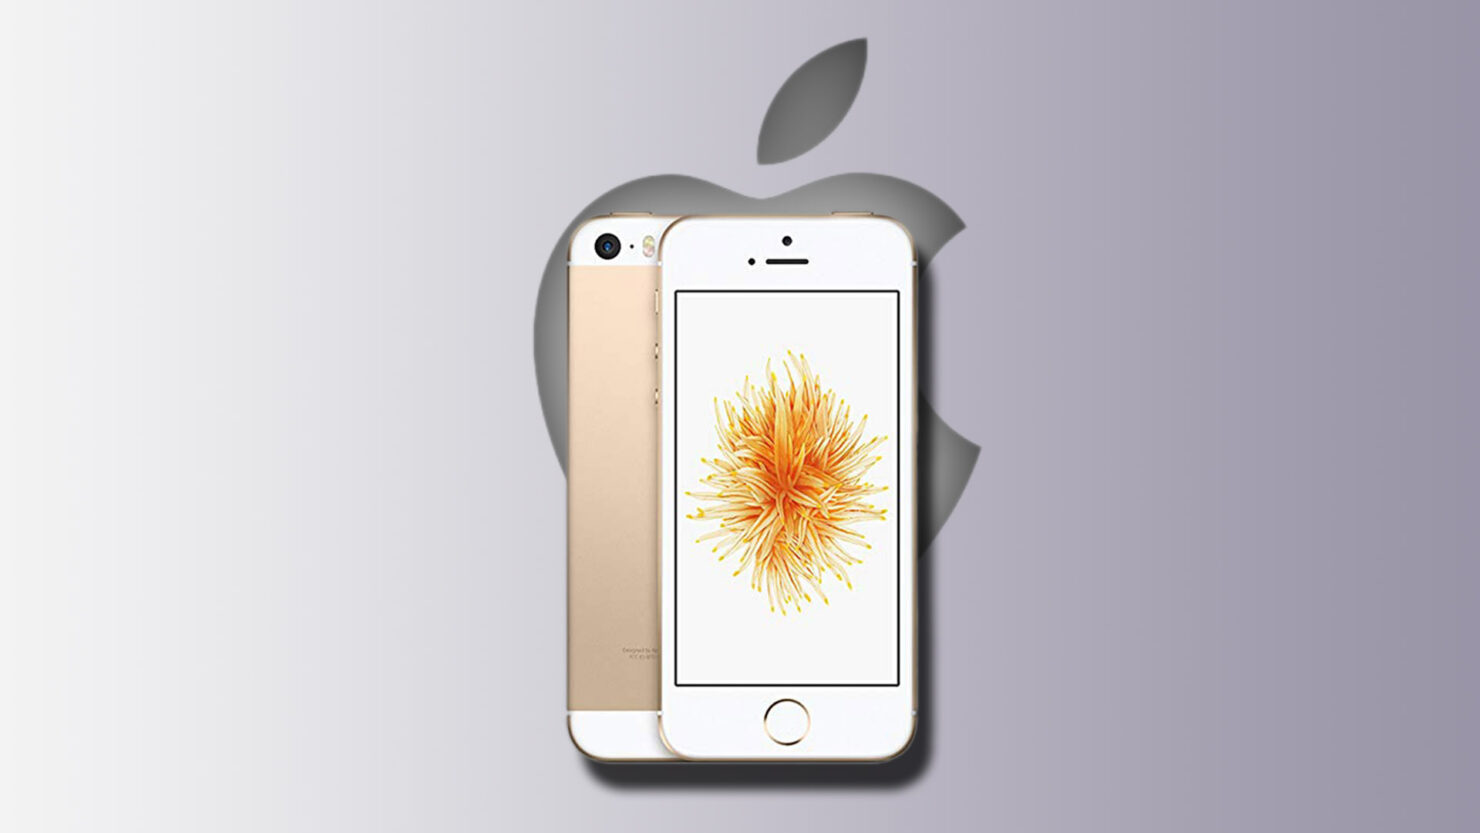 iPhone SE 2 Sales for 2020 Expected to Reach At Least 20 Million